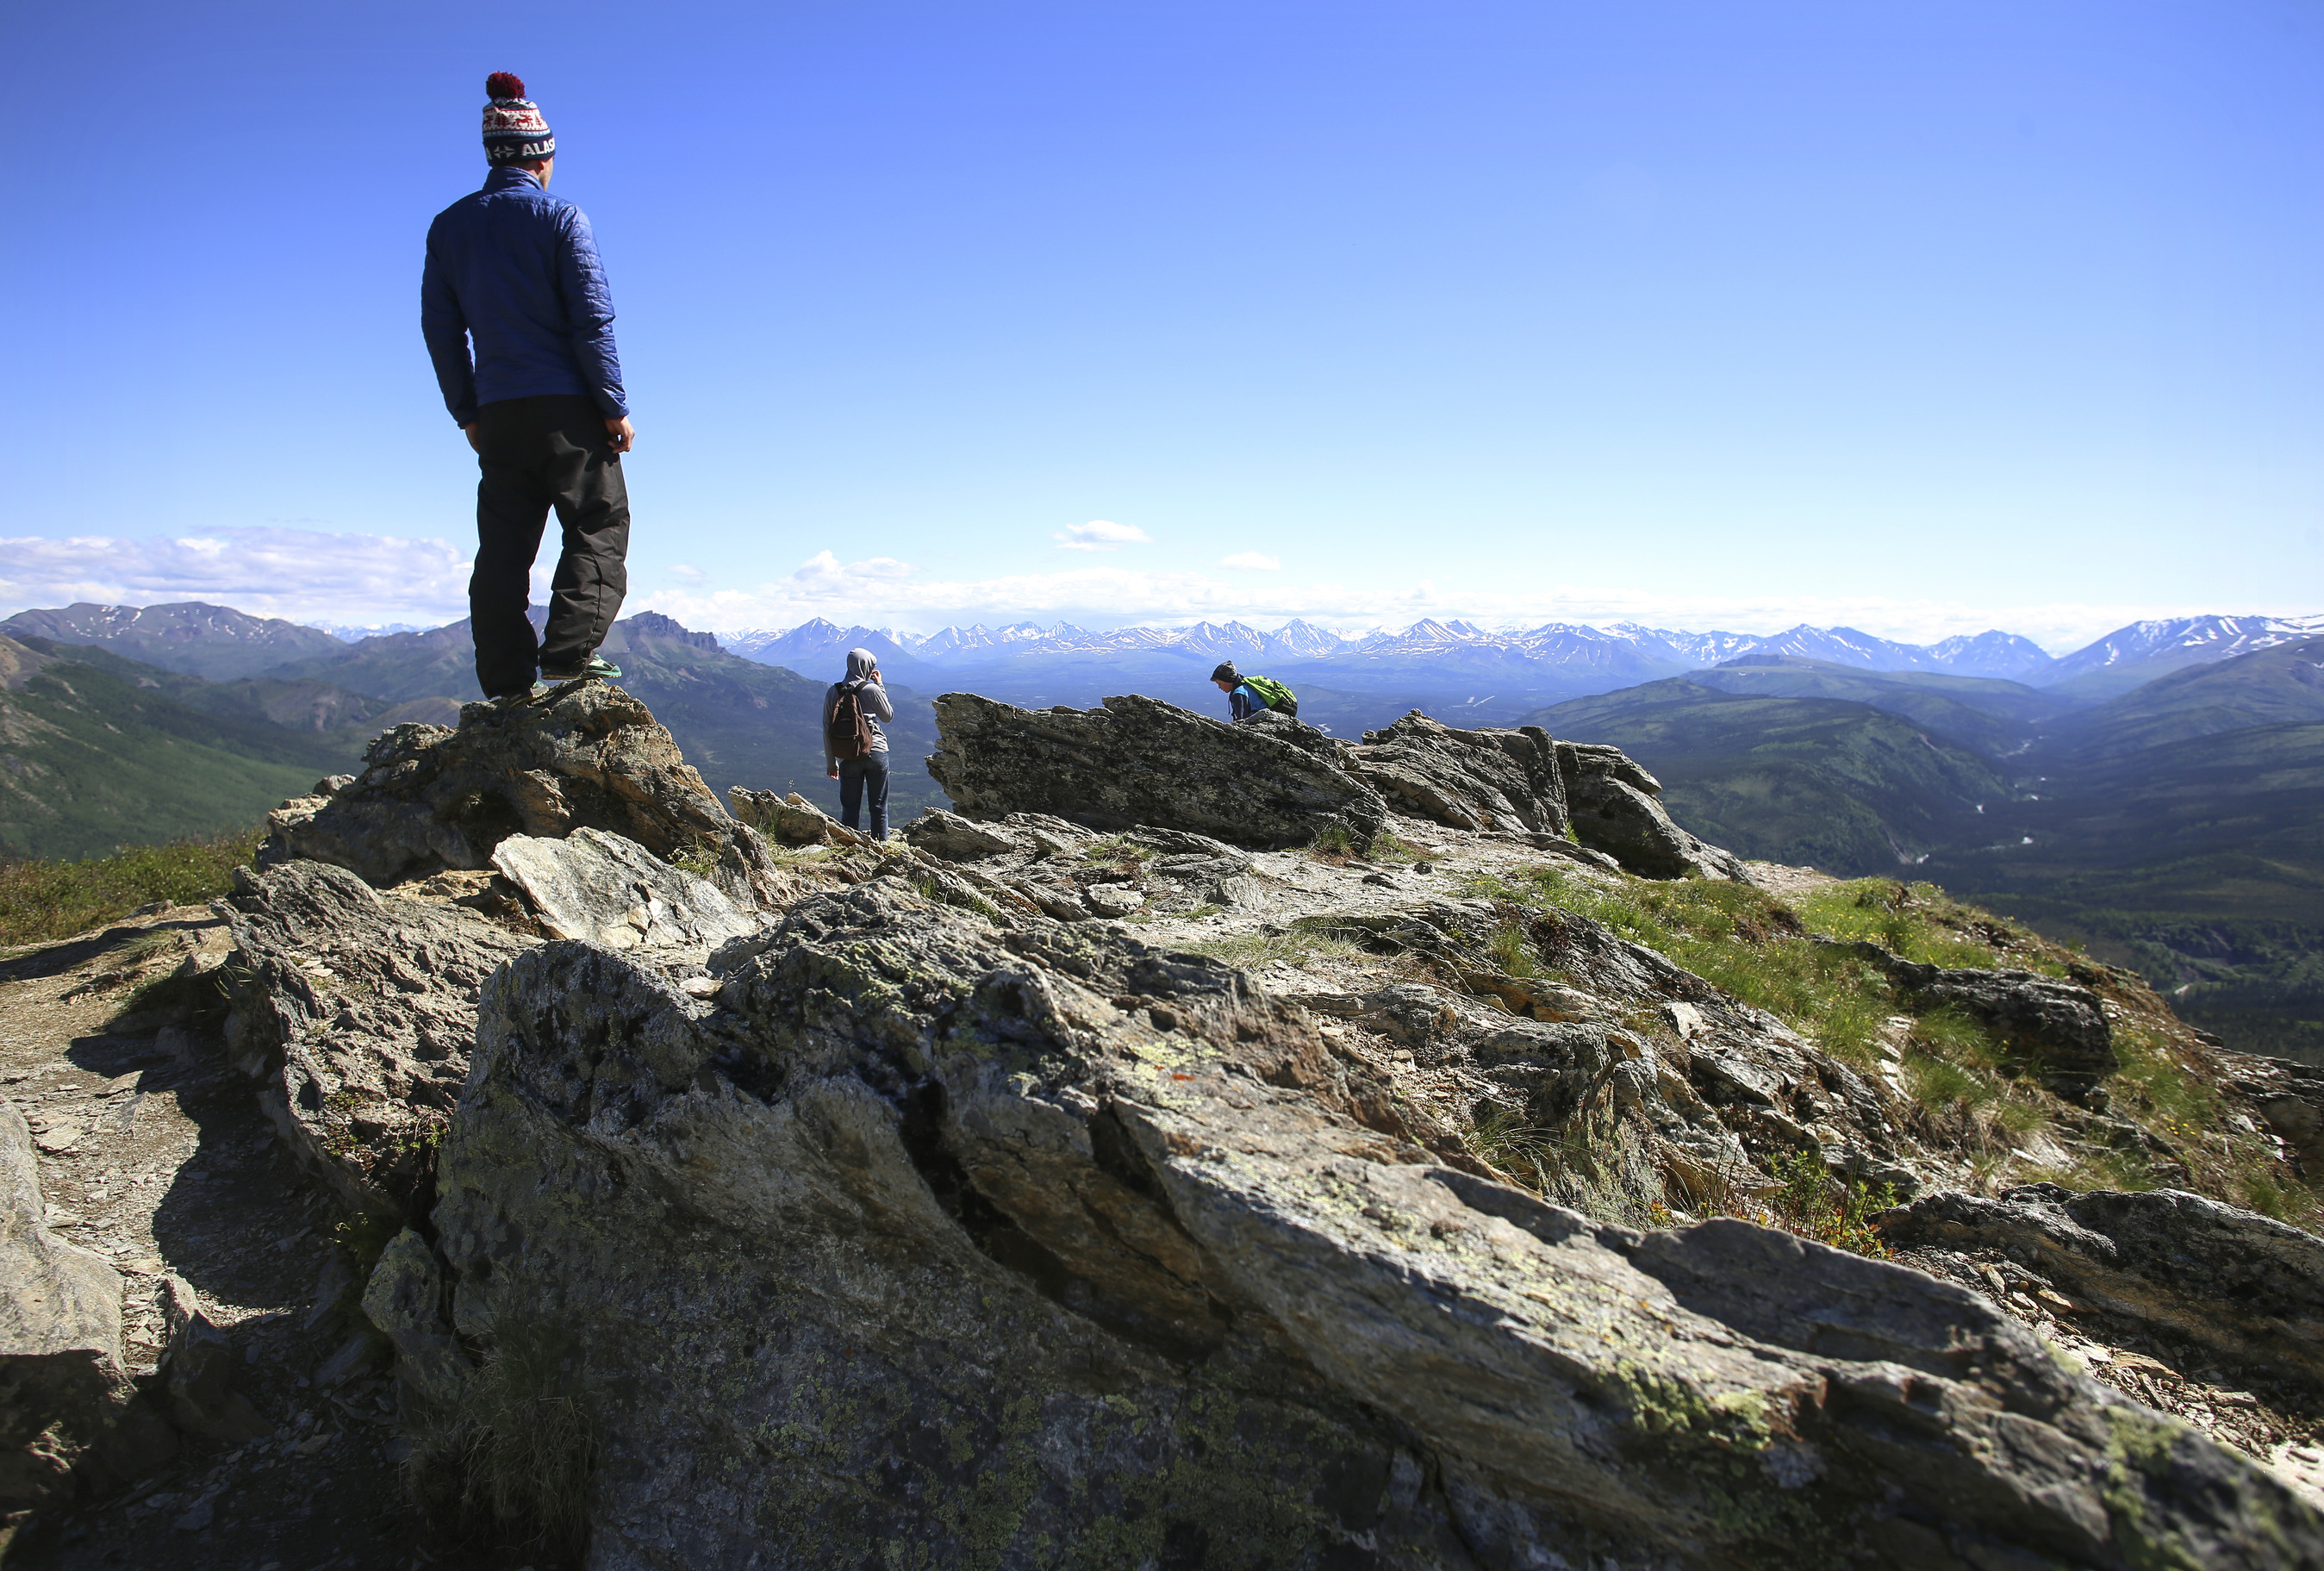 Visitors at the overlook on Mount Healy Trail and Denali National Park.